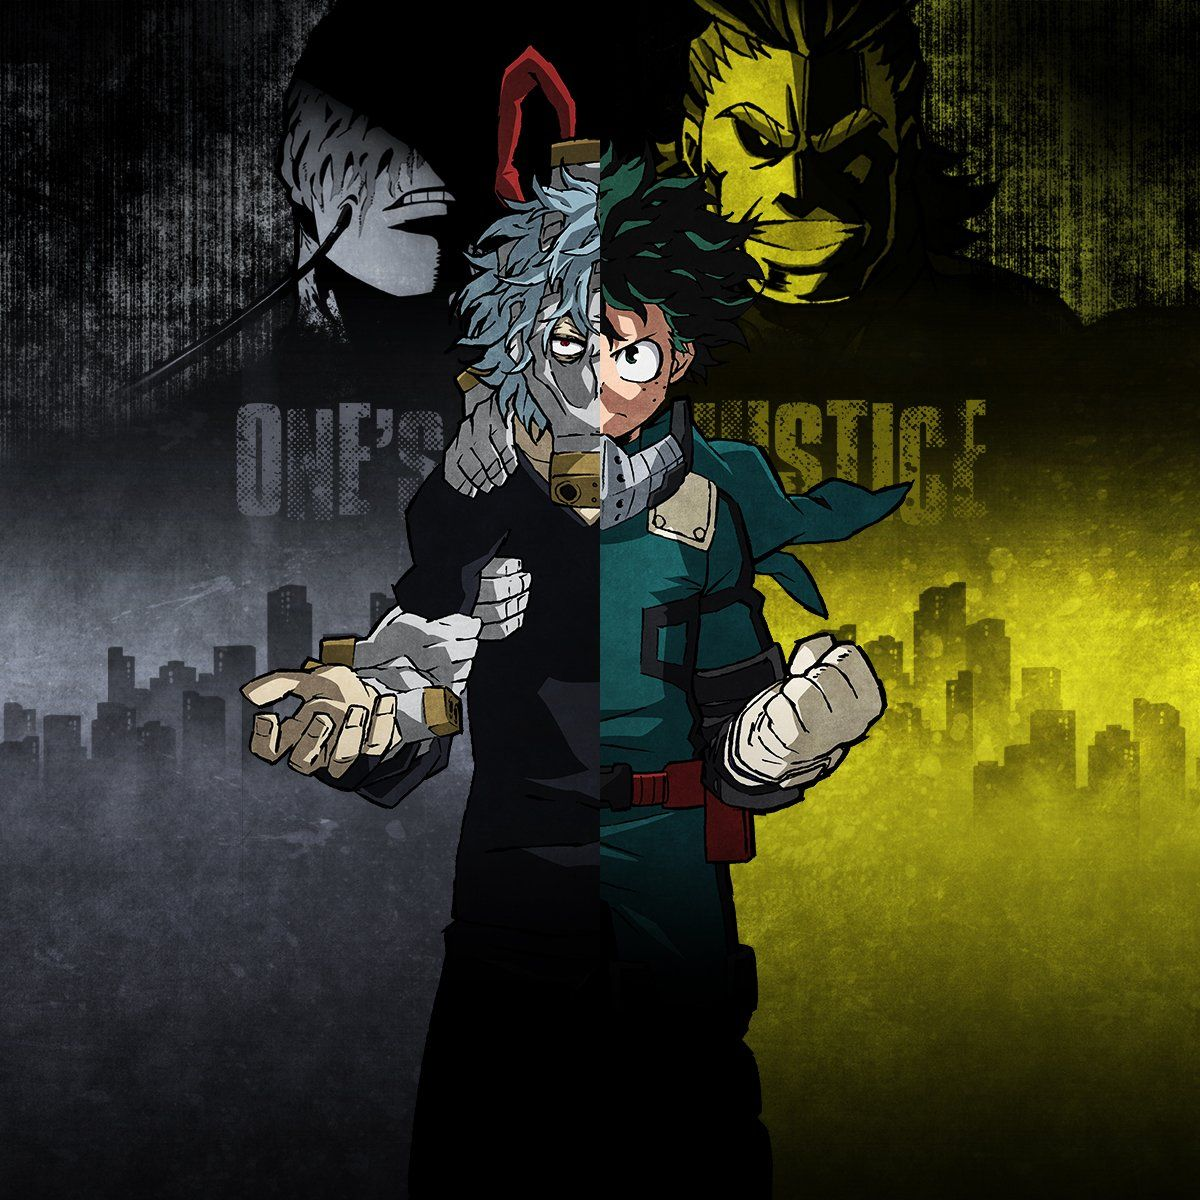 my-hero-academia-one-justice-jv-annonce.jpg